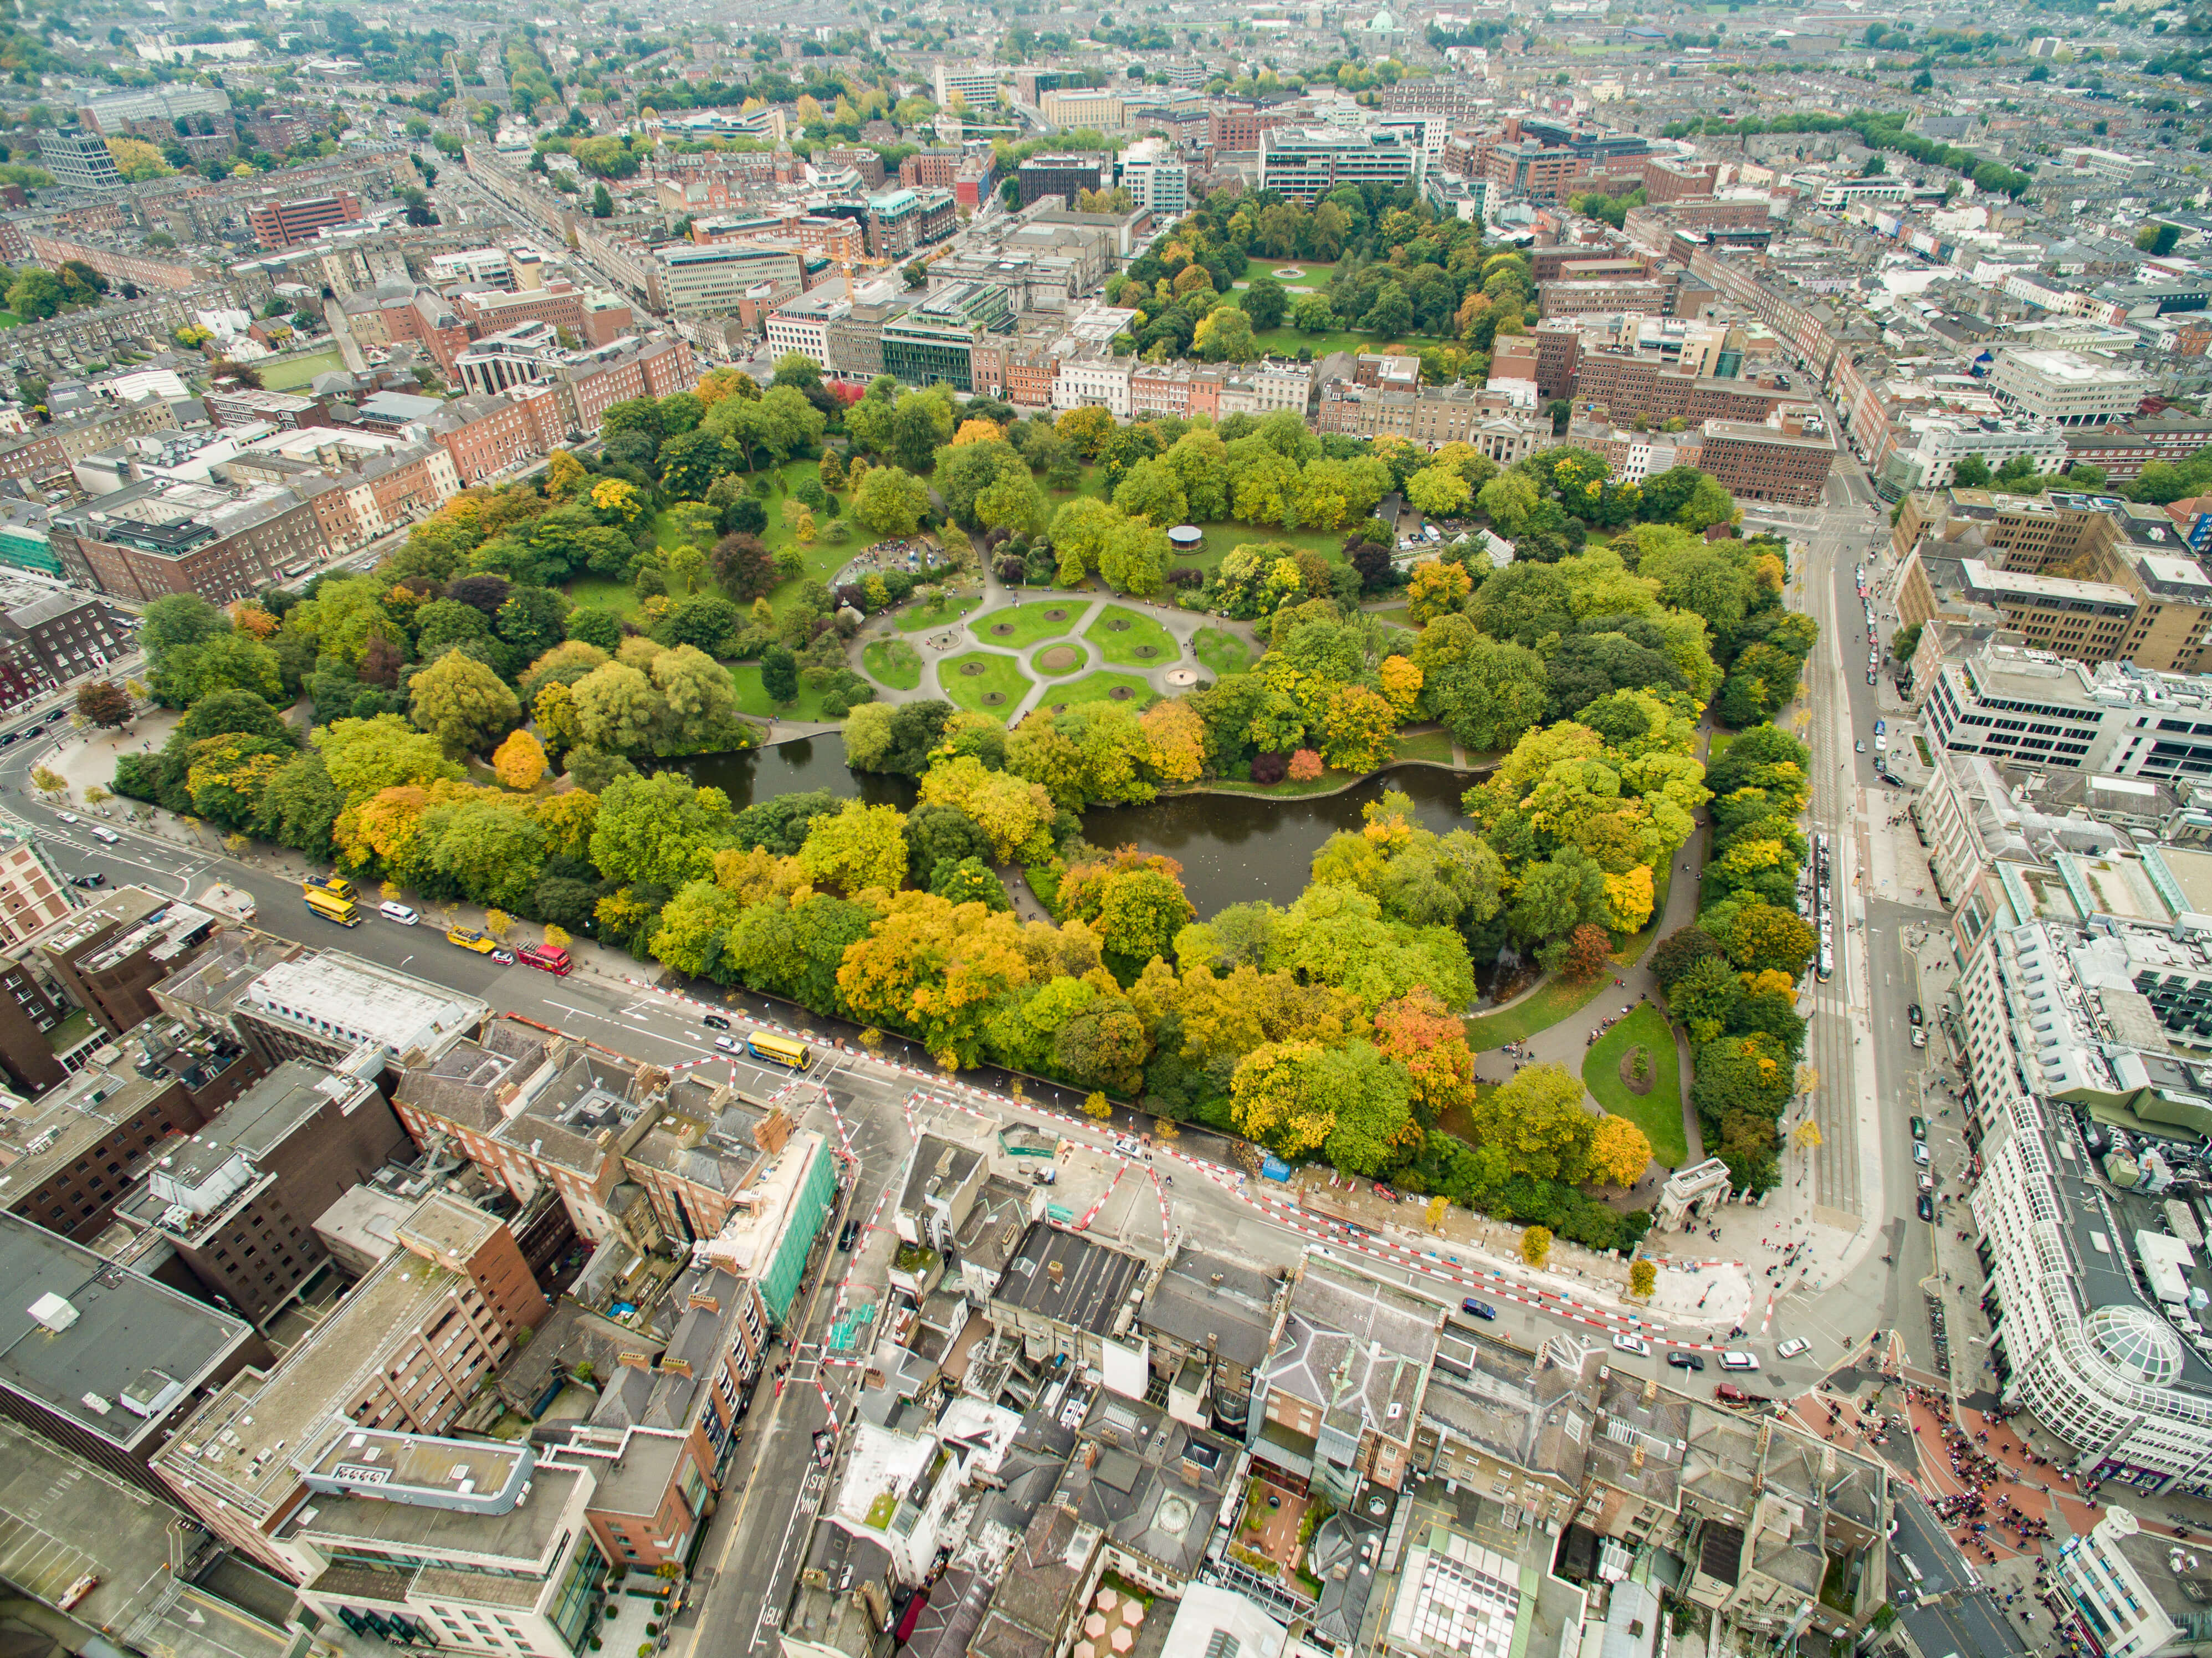 Arial photograph of Saint Stephen's Green - Photo Credit: Dronepicr (Flickr)